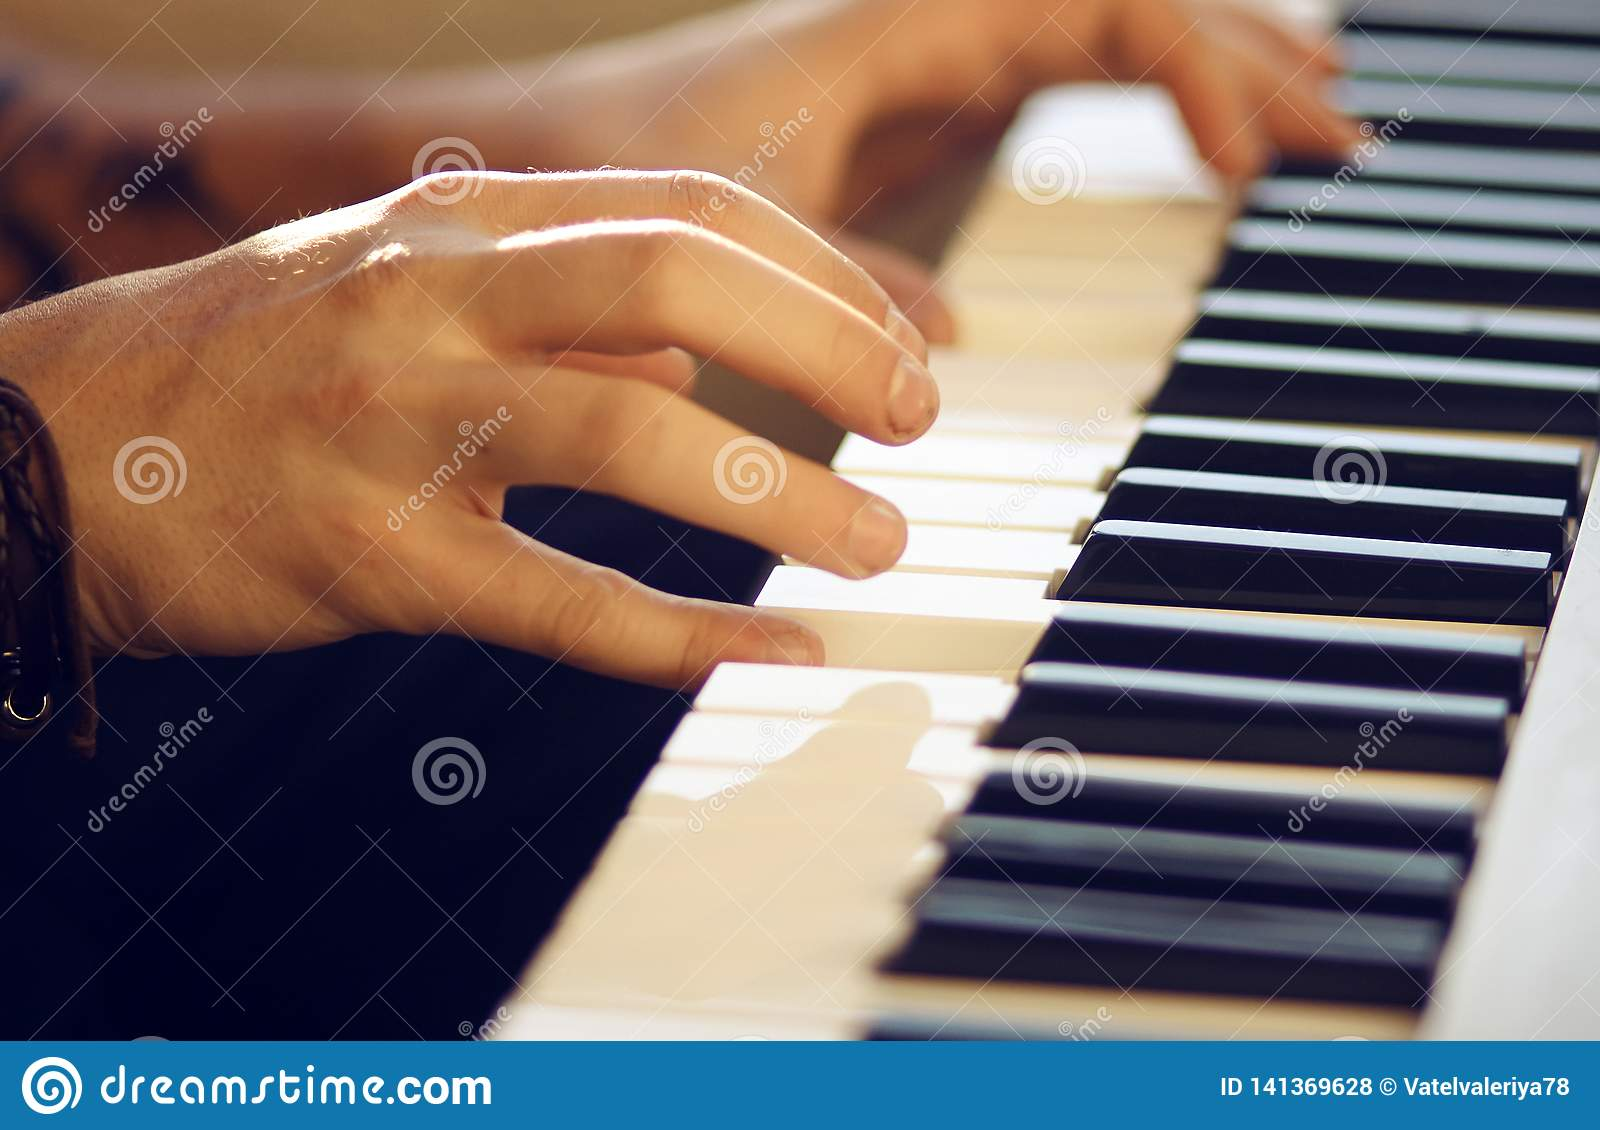 On a musical keyboard instrument man plays a melody with his hands